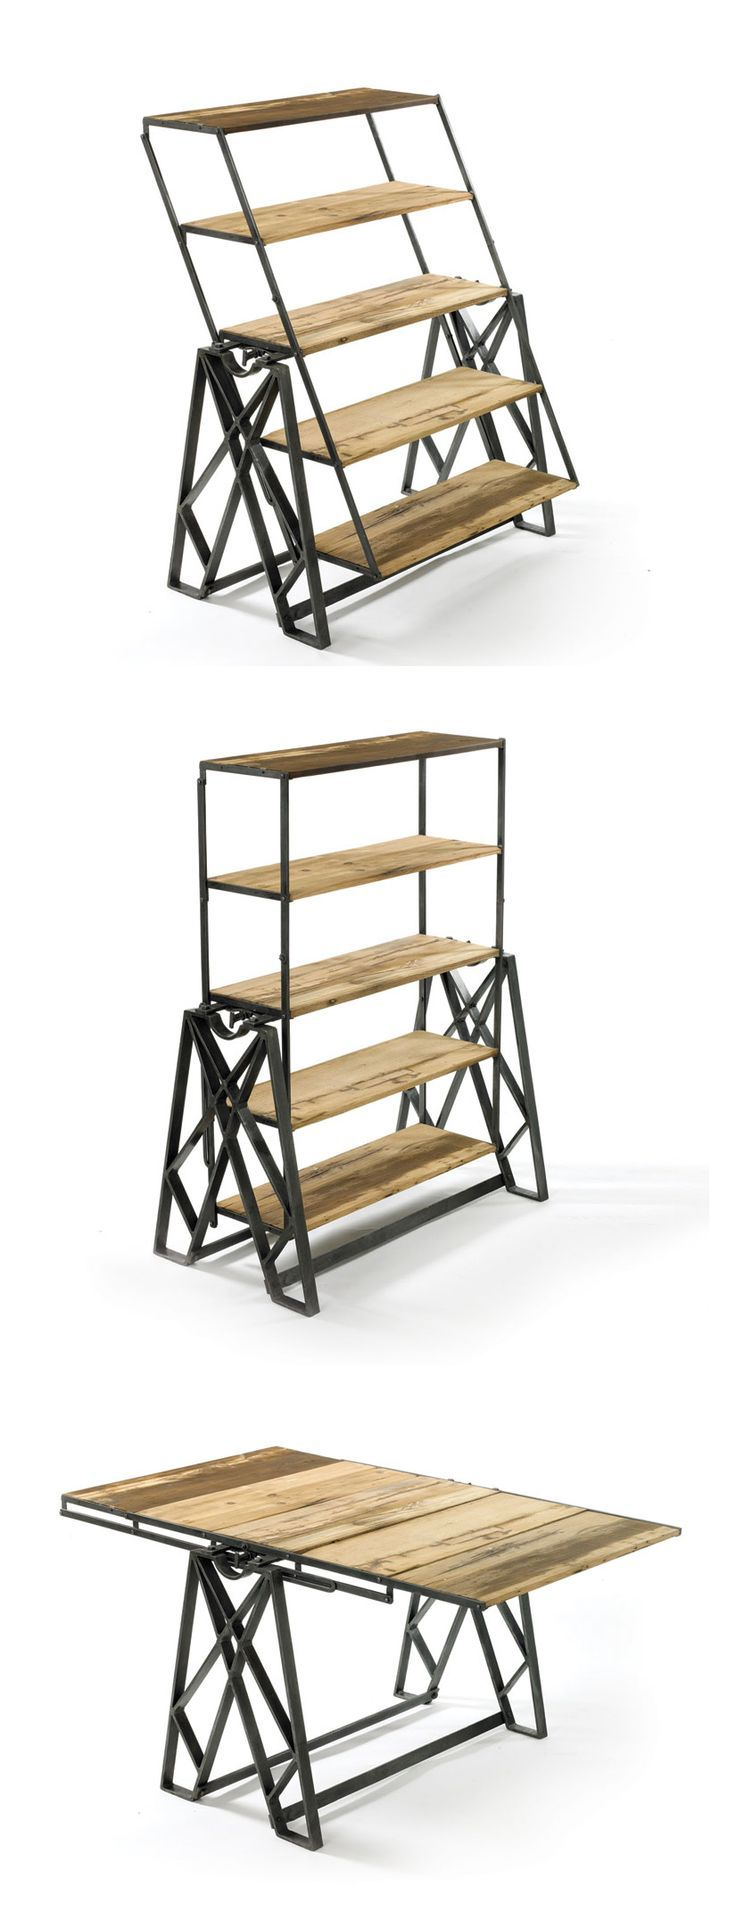 Reclaimed wood convertible shelf table ideias de produtos